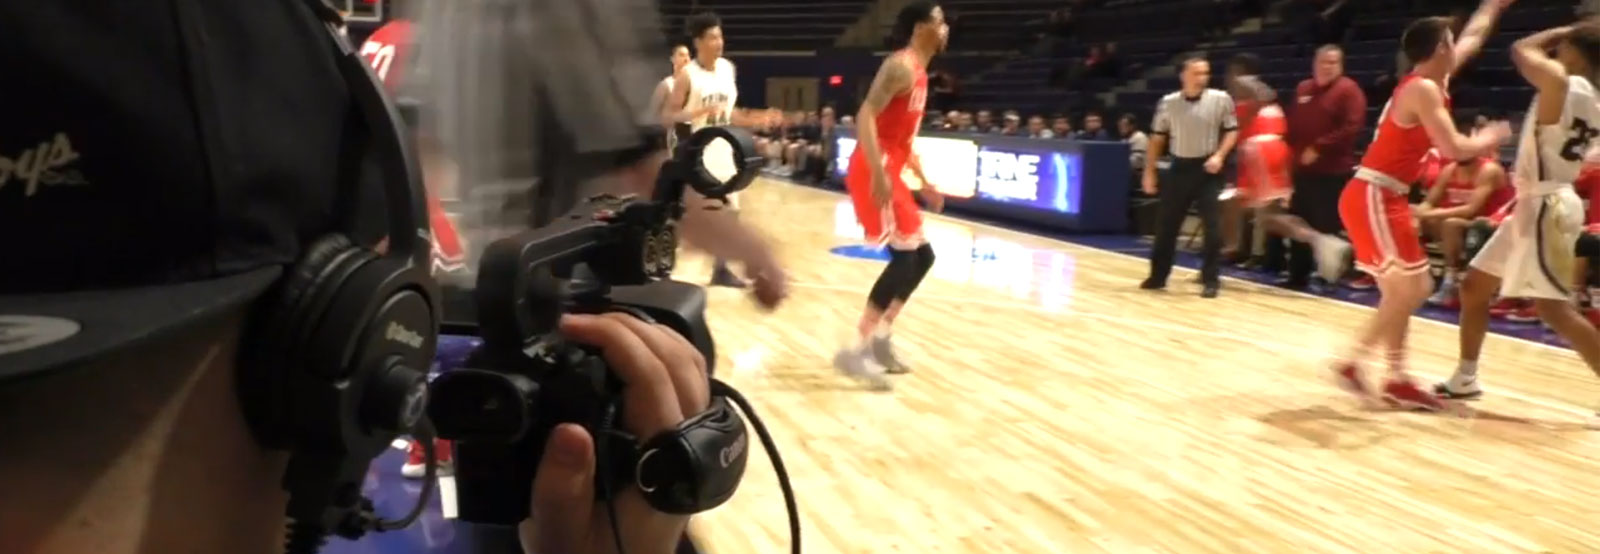 Video at basketball game